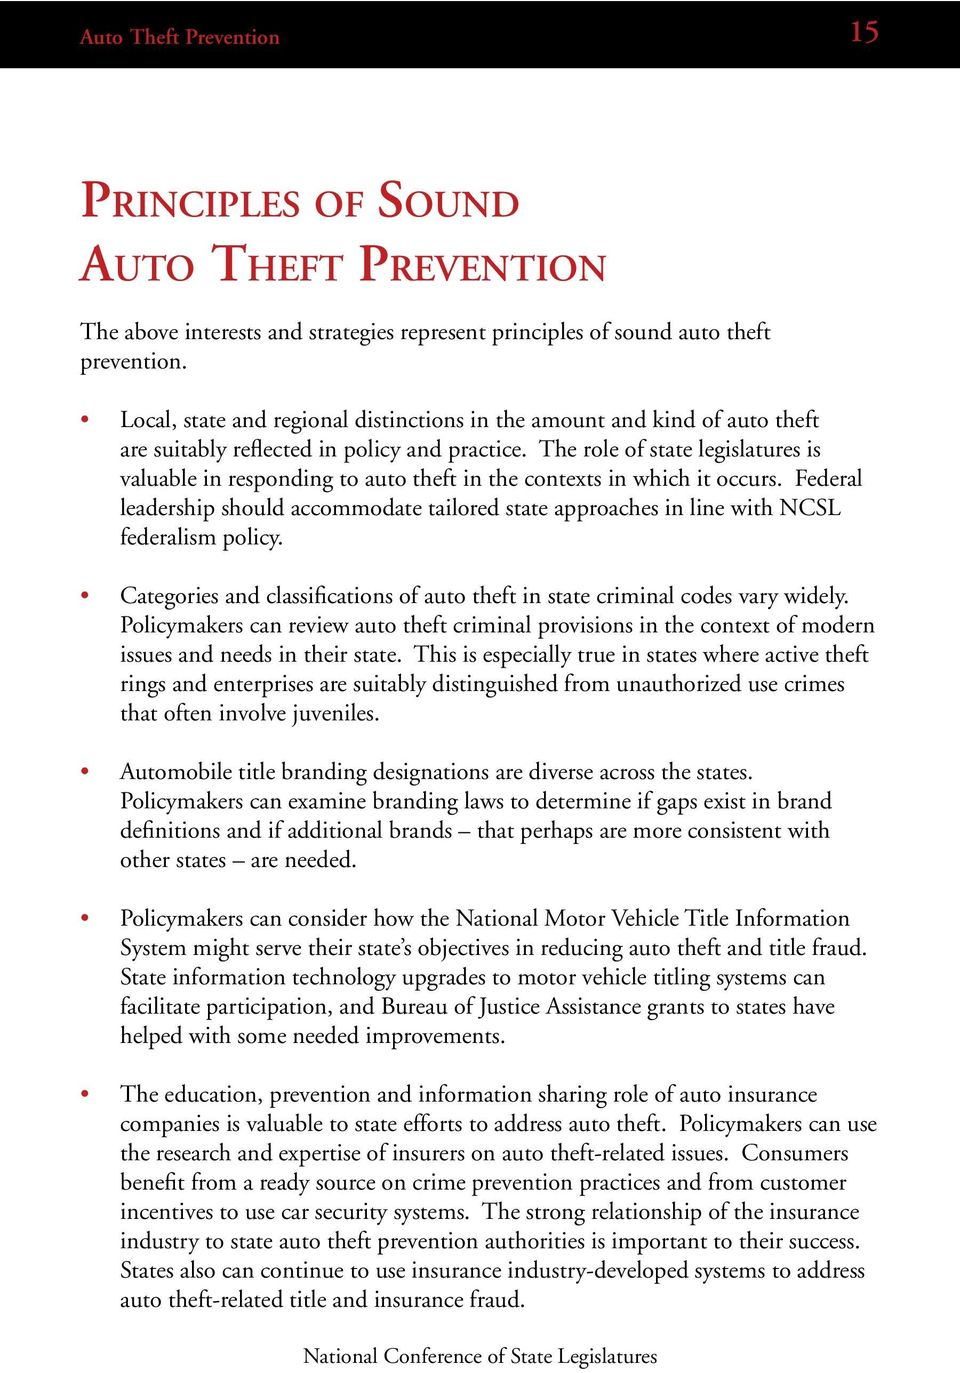 The role of state legislatures is valuable in responding to auto theft in the contexts in which it occurs.